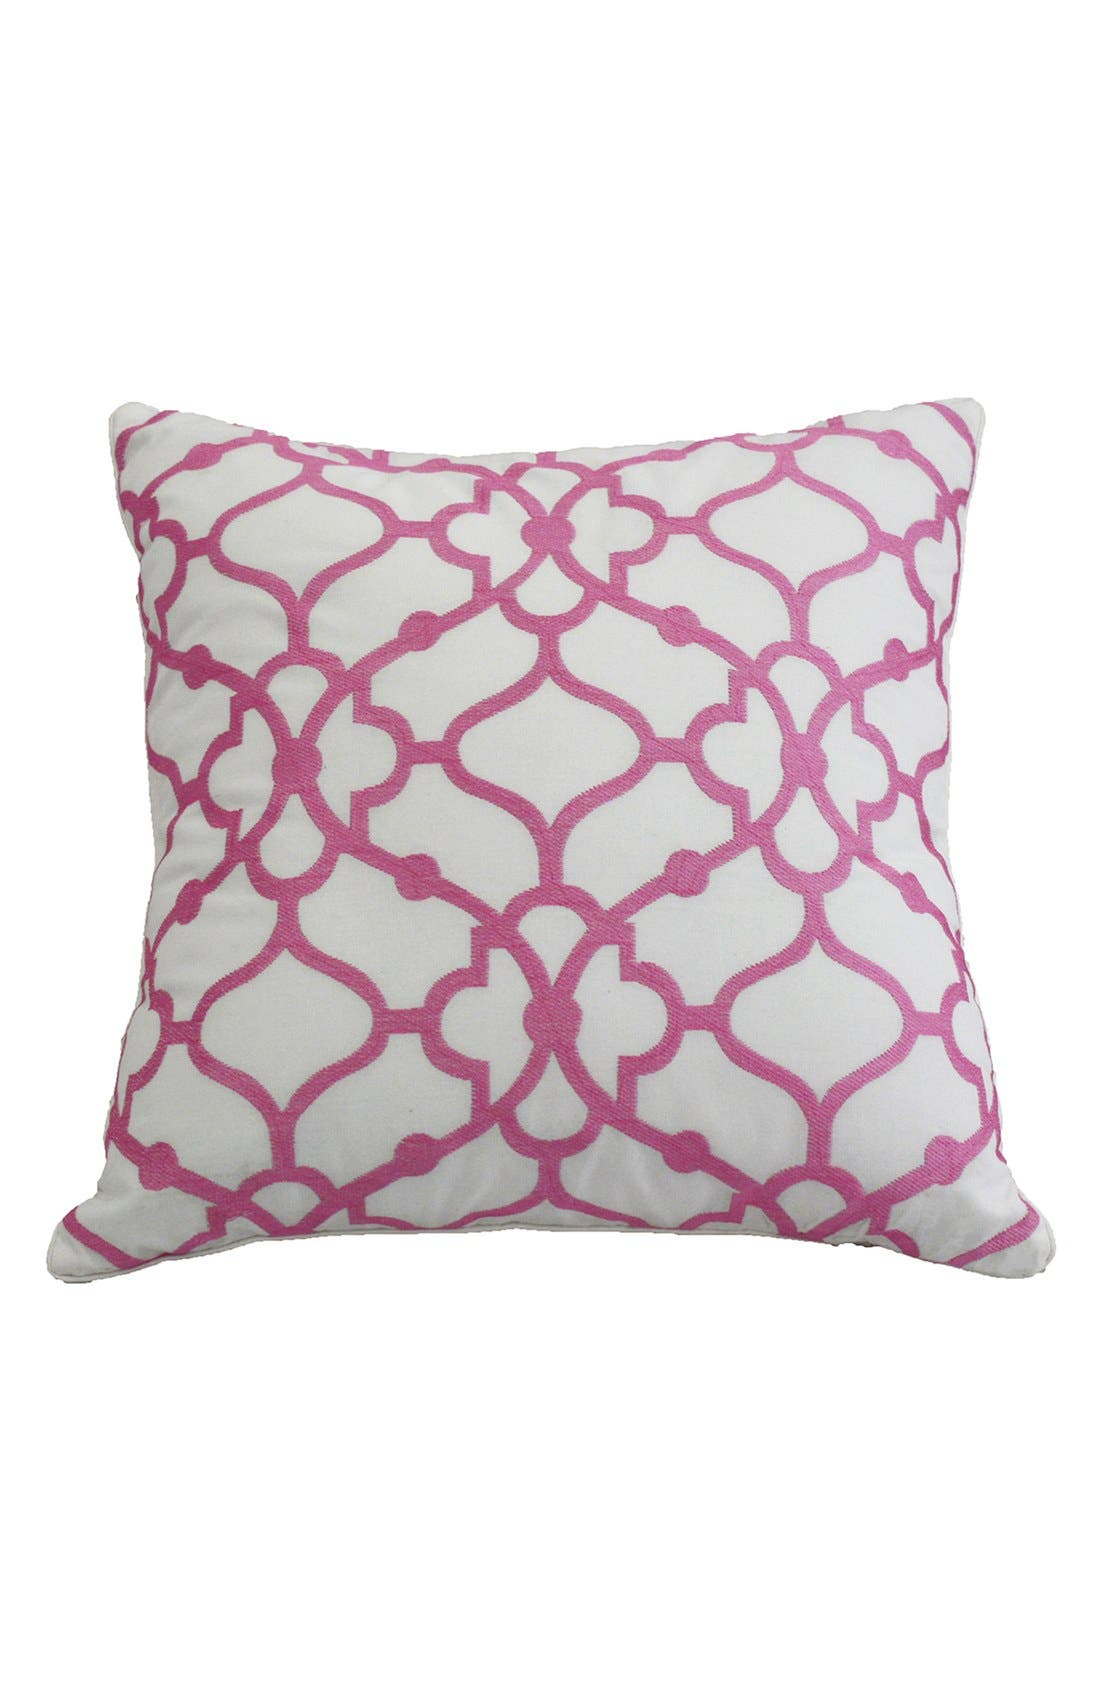 Main Image - Dena Home 'Olivia' Pillow